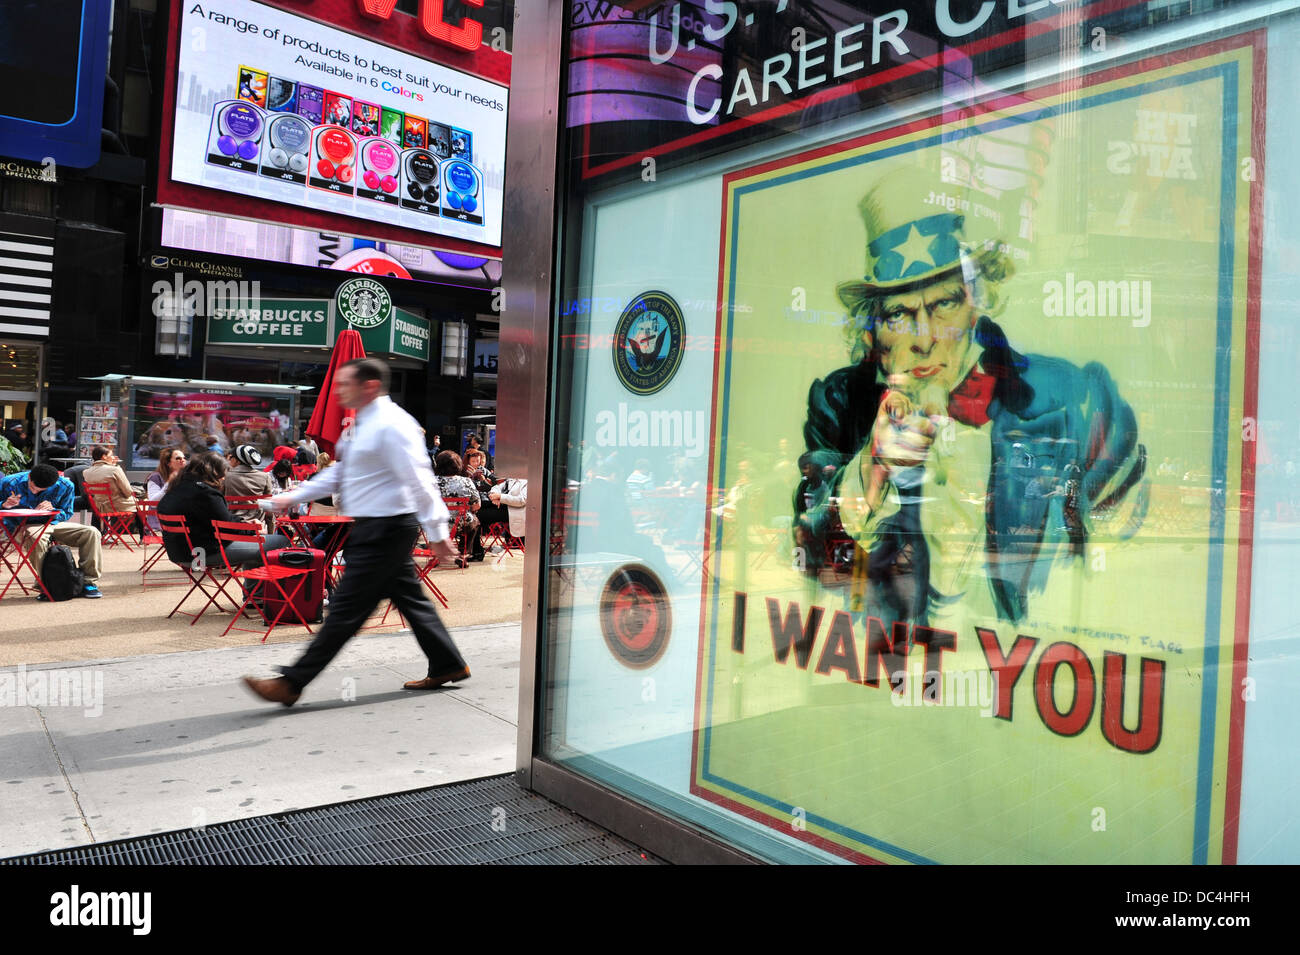 Poster of Uncle Sam reads 'I WANT YOU' on the US Army recruit center in Times Square, New York - Stock Image